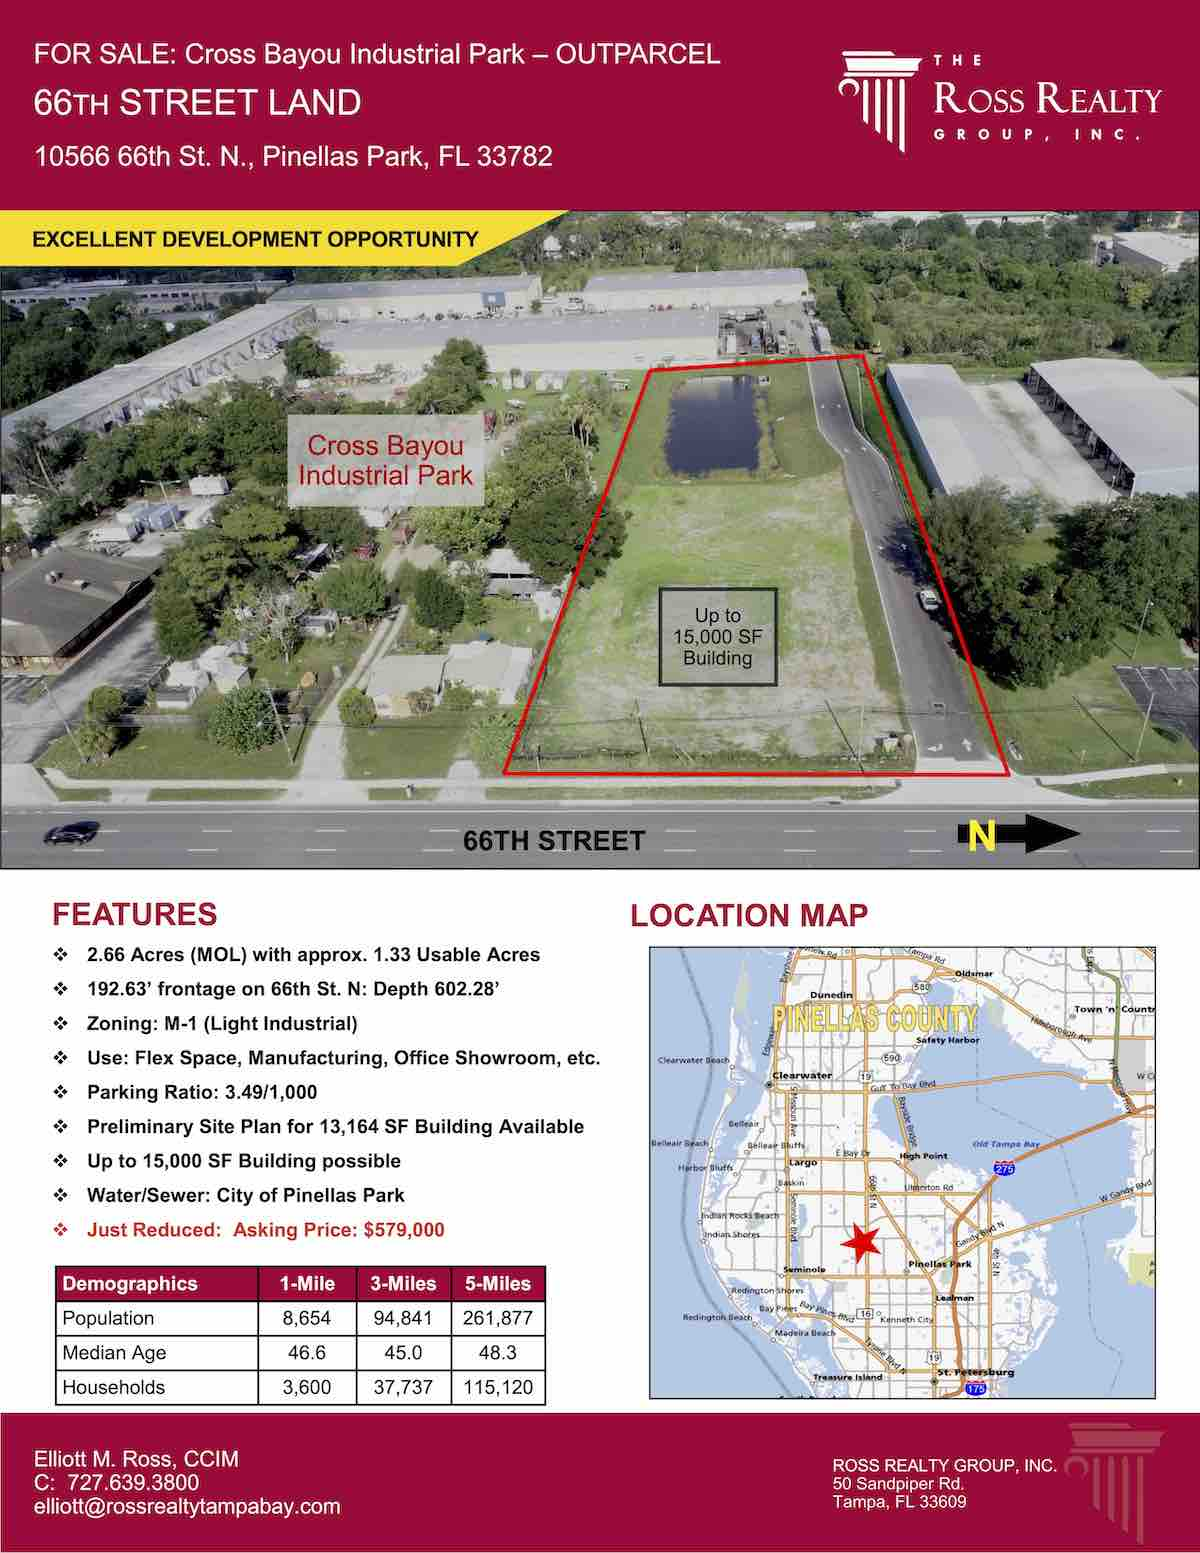 Tampa Commercial Real Estate - FOR SALE - Cross Bayou Industrial Park – Outparcel - 66th Street Land - 10566 66th St. N., Pinellas Park, FL 33782 P1